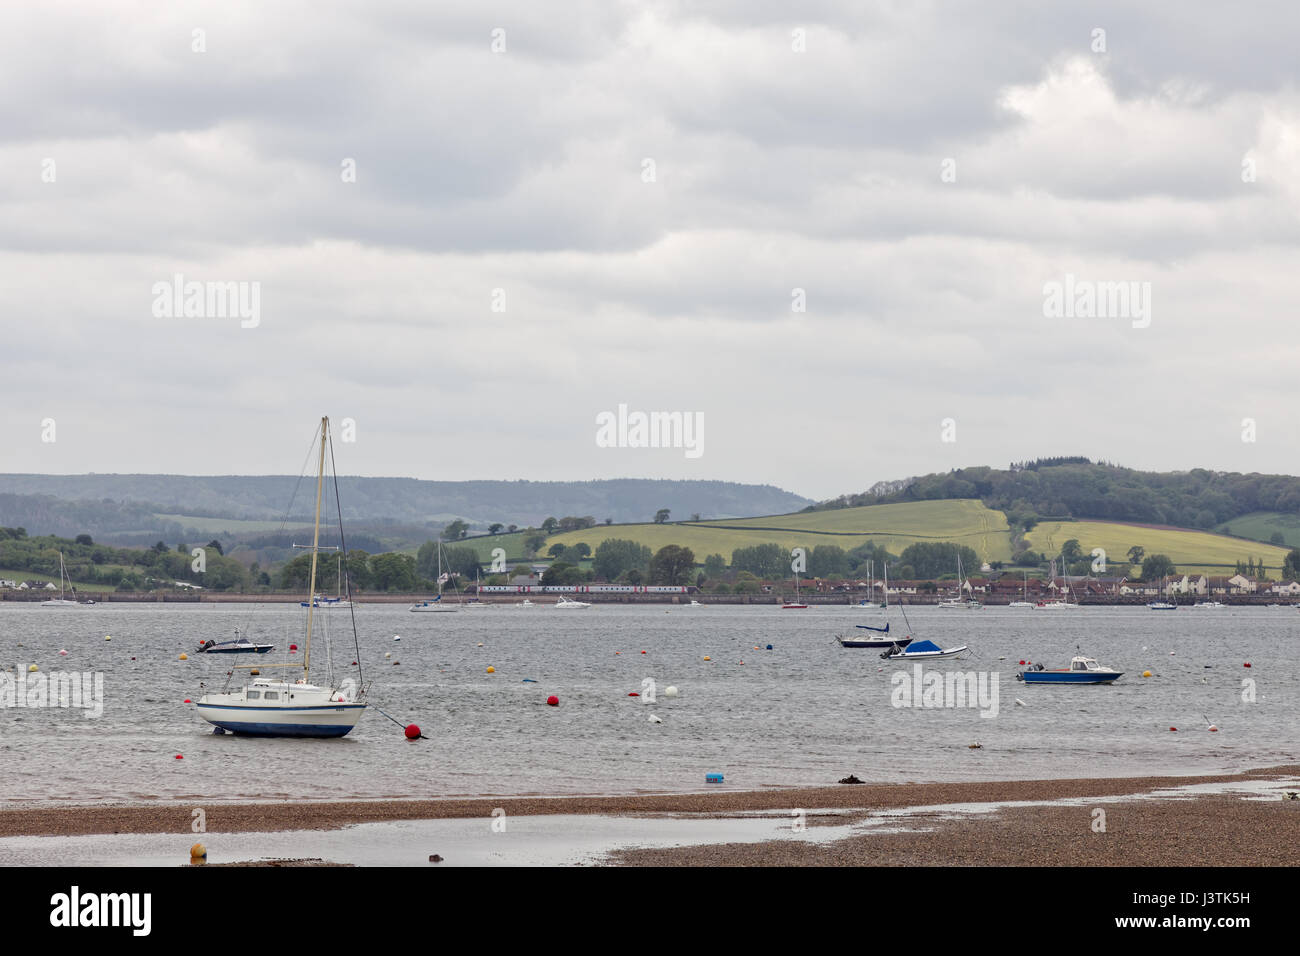 Boats moored in the River Exe estuary at Exmouth with Cross Country train on the Riviera line in the background - Stock Image